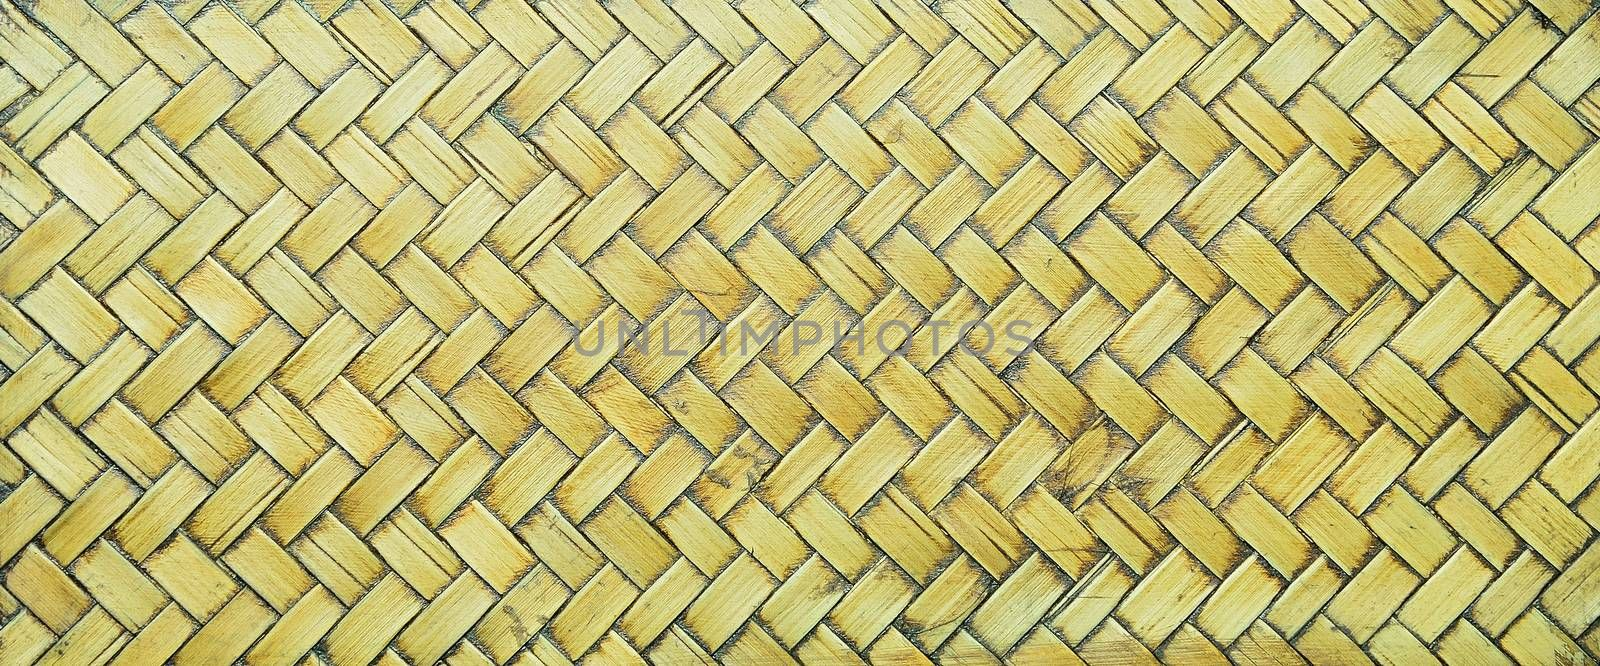 Abstract bamboo texture background, closeup